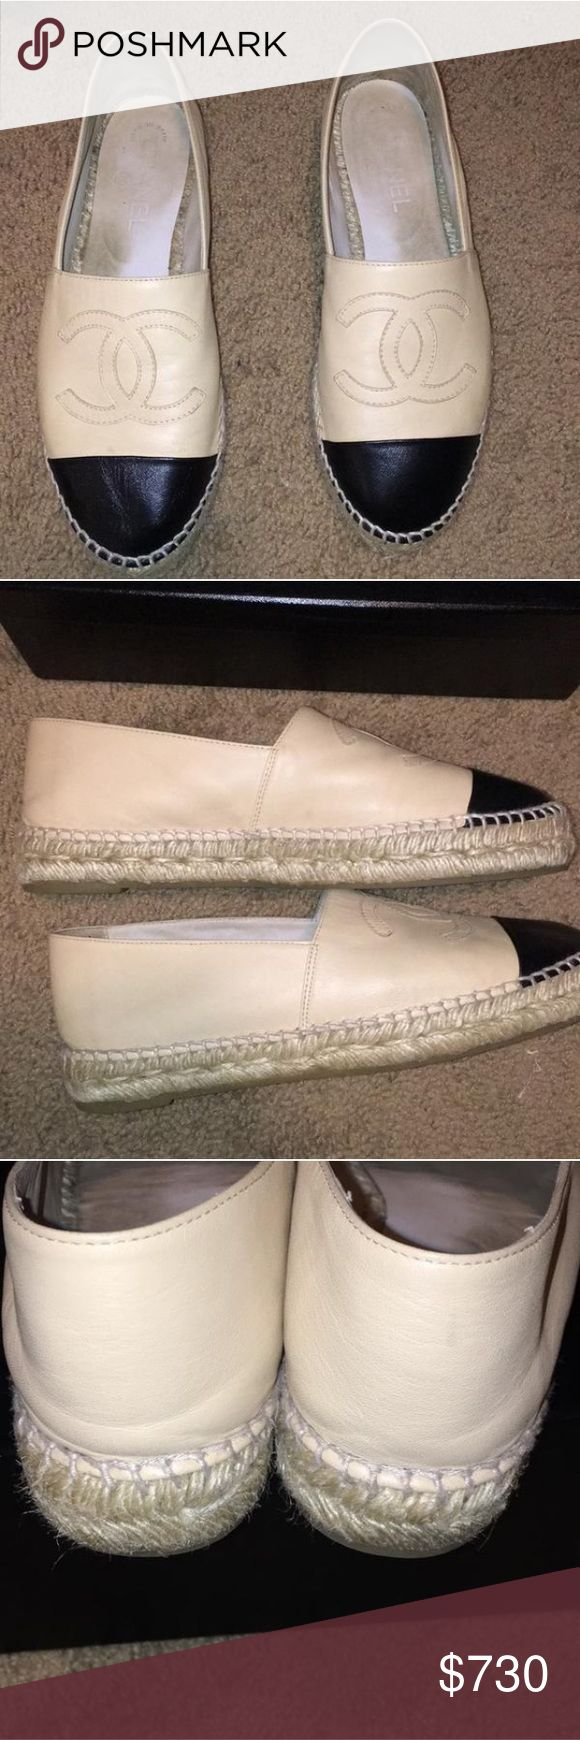 Chanel black and beige espadrilles Gently used Chanel espadrilles with lots of life left. The front part has worn a little bit. Inside has foot marks. CHANEL Shoes Espadrilles